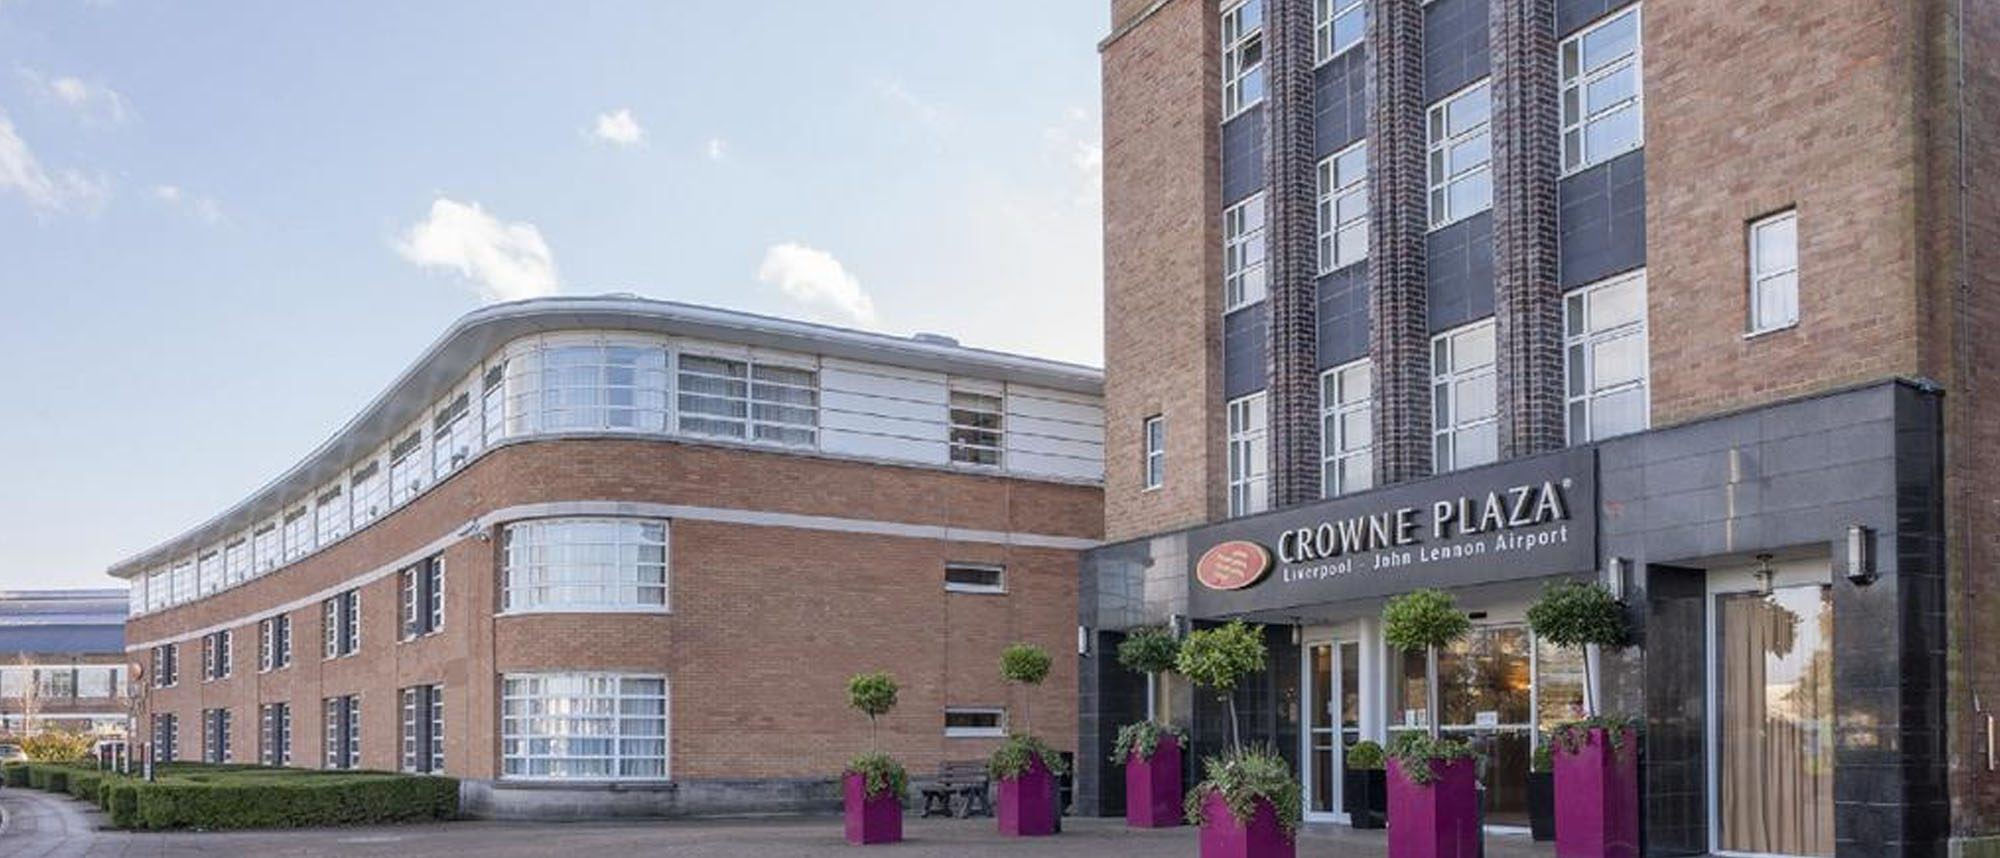 Crowne Plaza Liverpool Airport